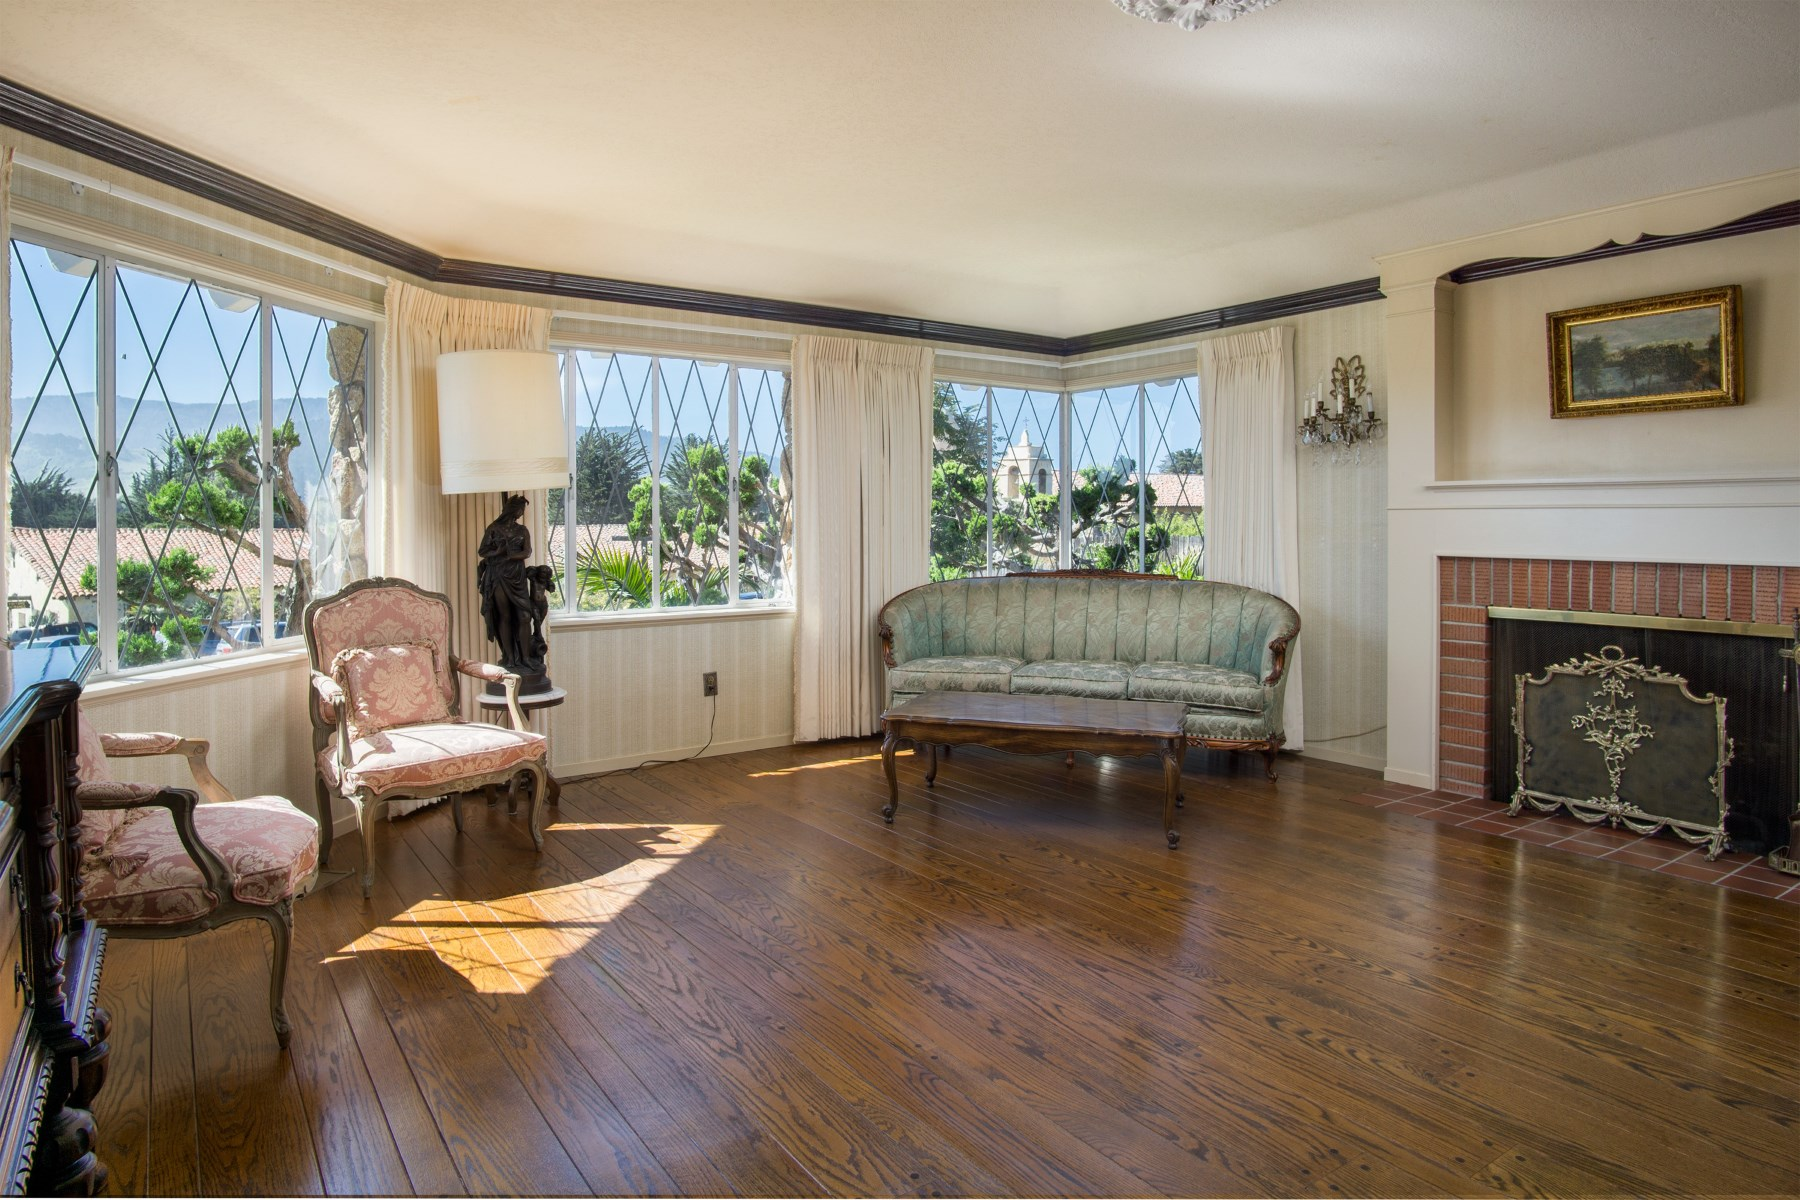 Single Family Home for Sale at Prominent Home by the Carmel Mission 3037 Lasuen Drive Carmel, California, 93923 United States